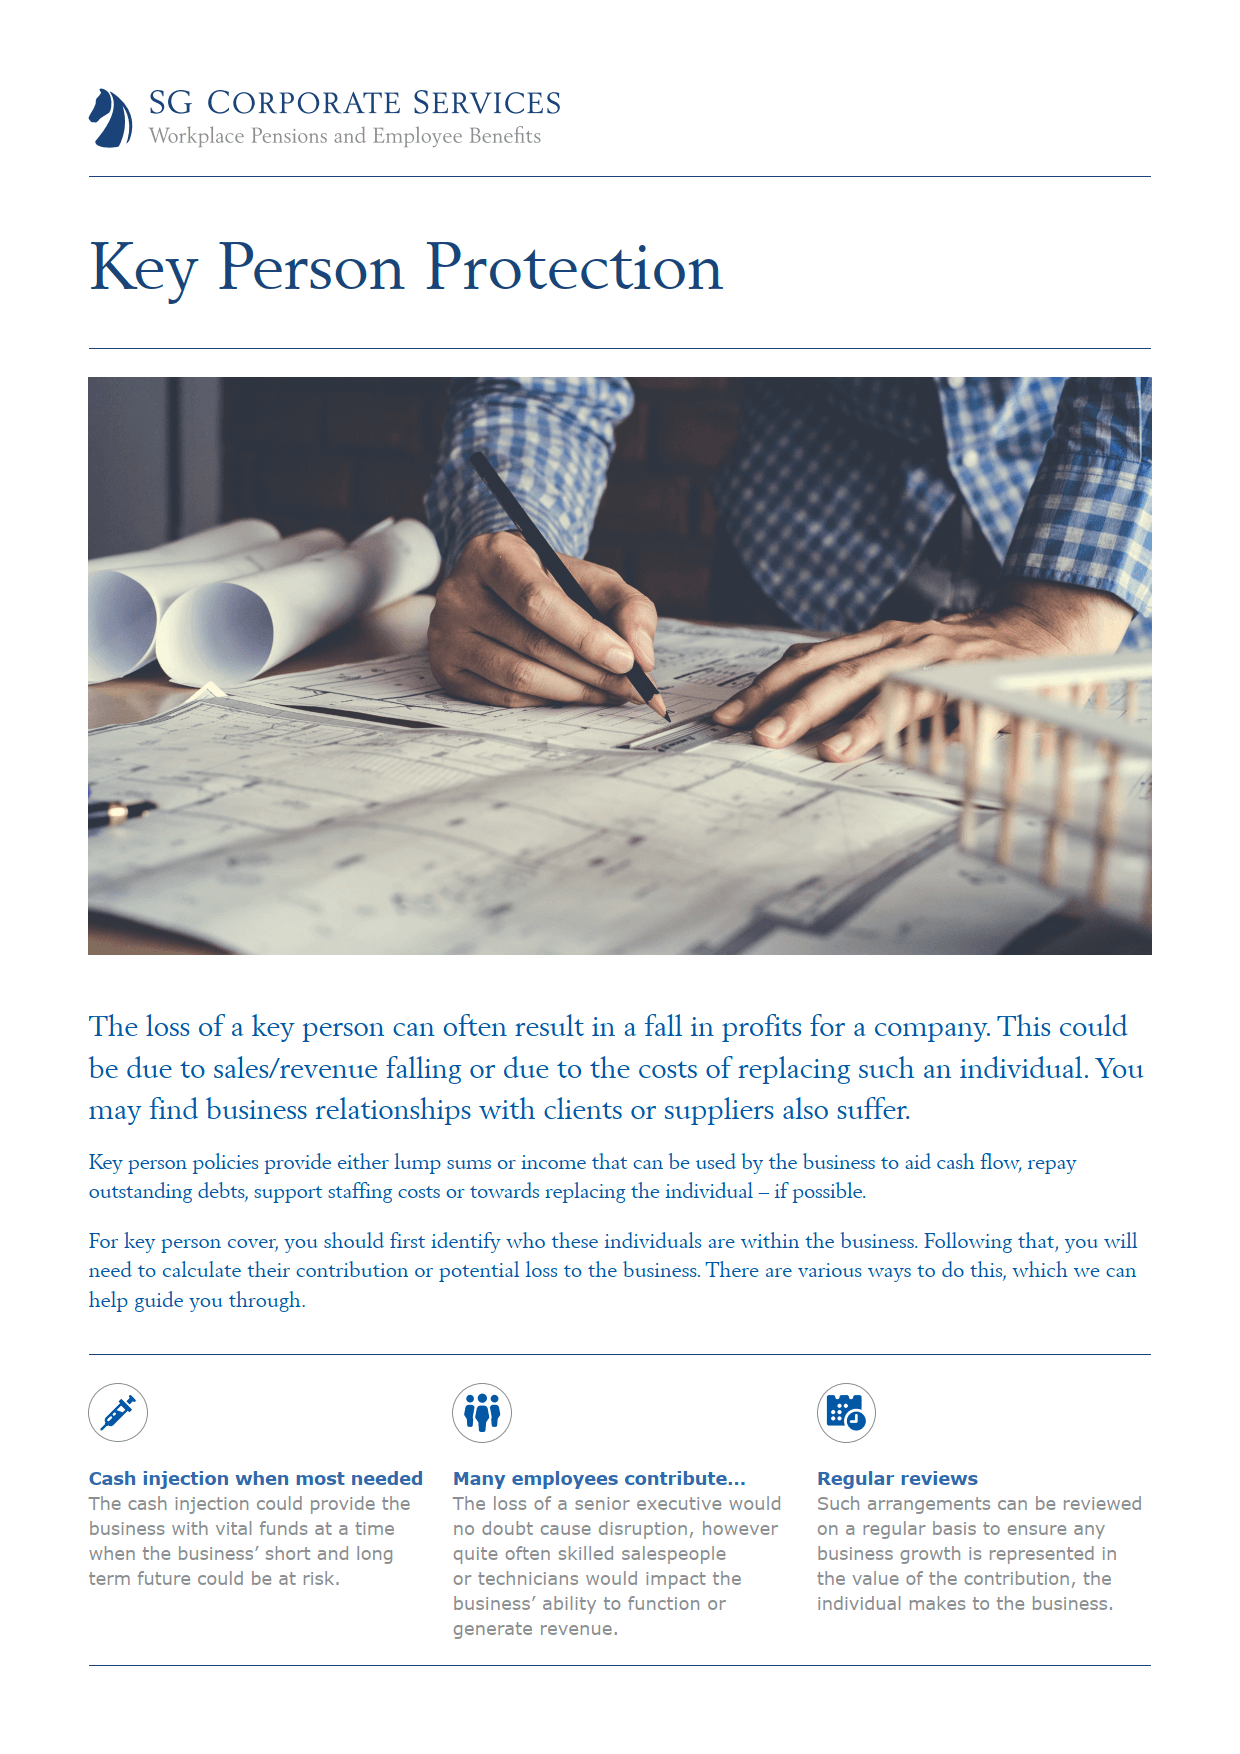 Product Guide - Key Person Protection